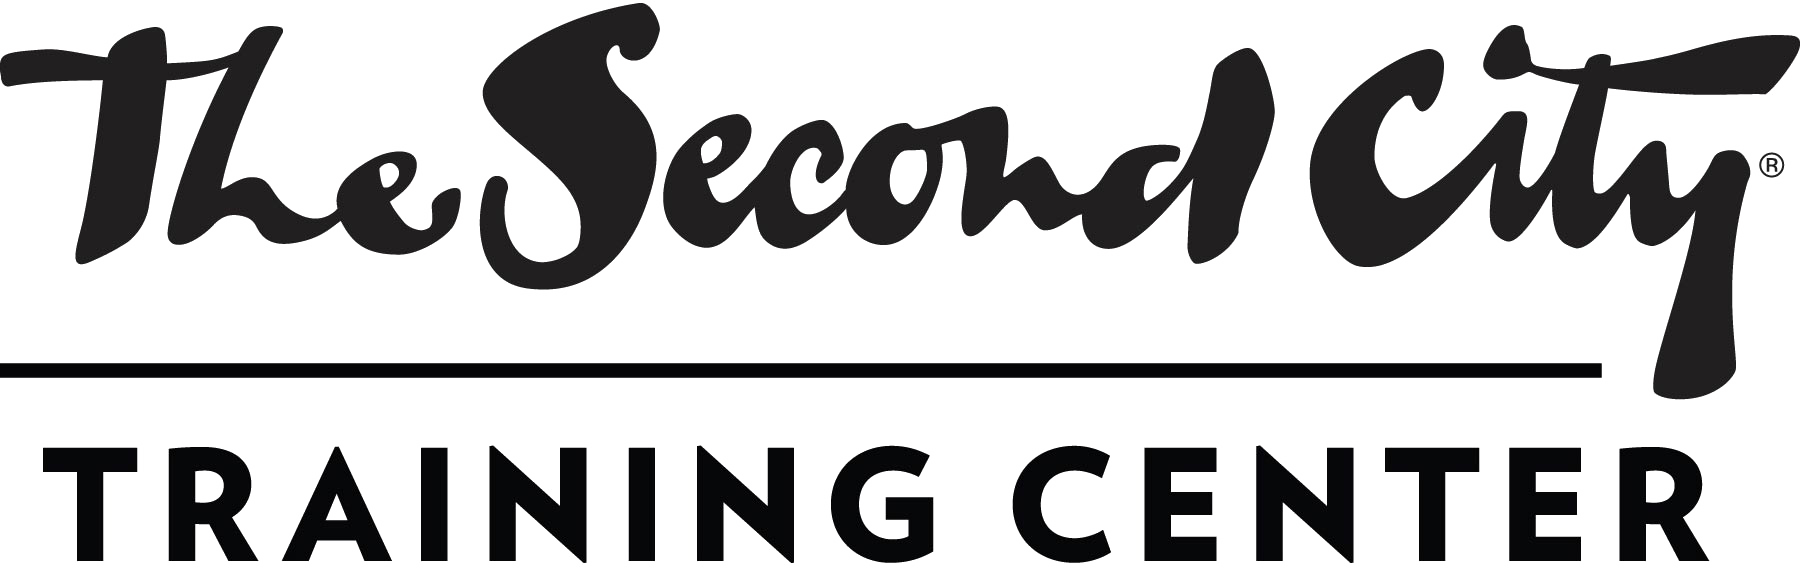 Second City Training Center Logo_trans.png